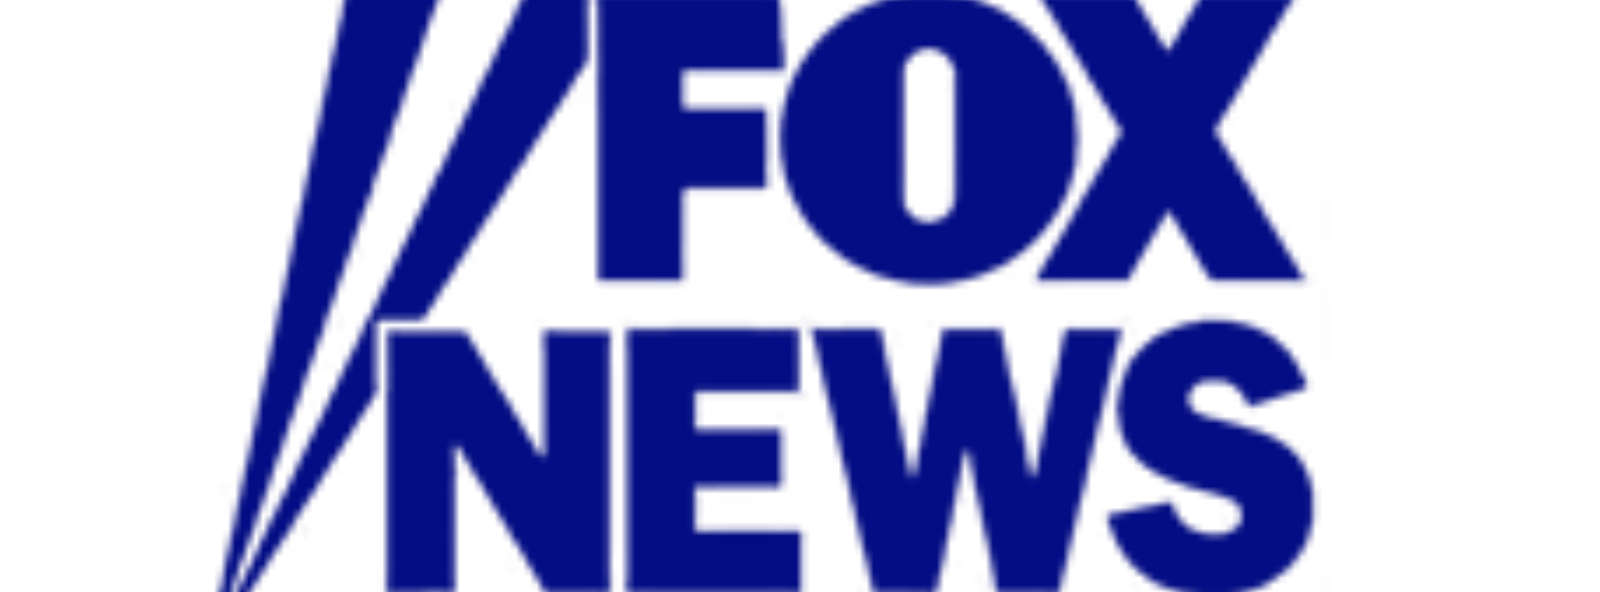 Fox News Logo - Fox news Logos